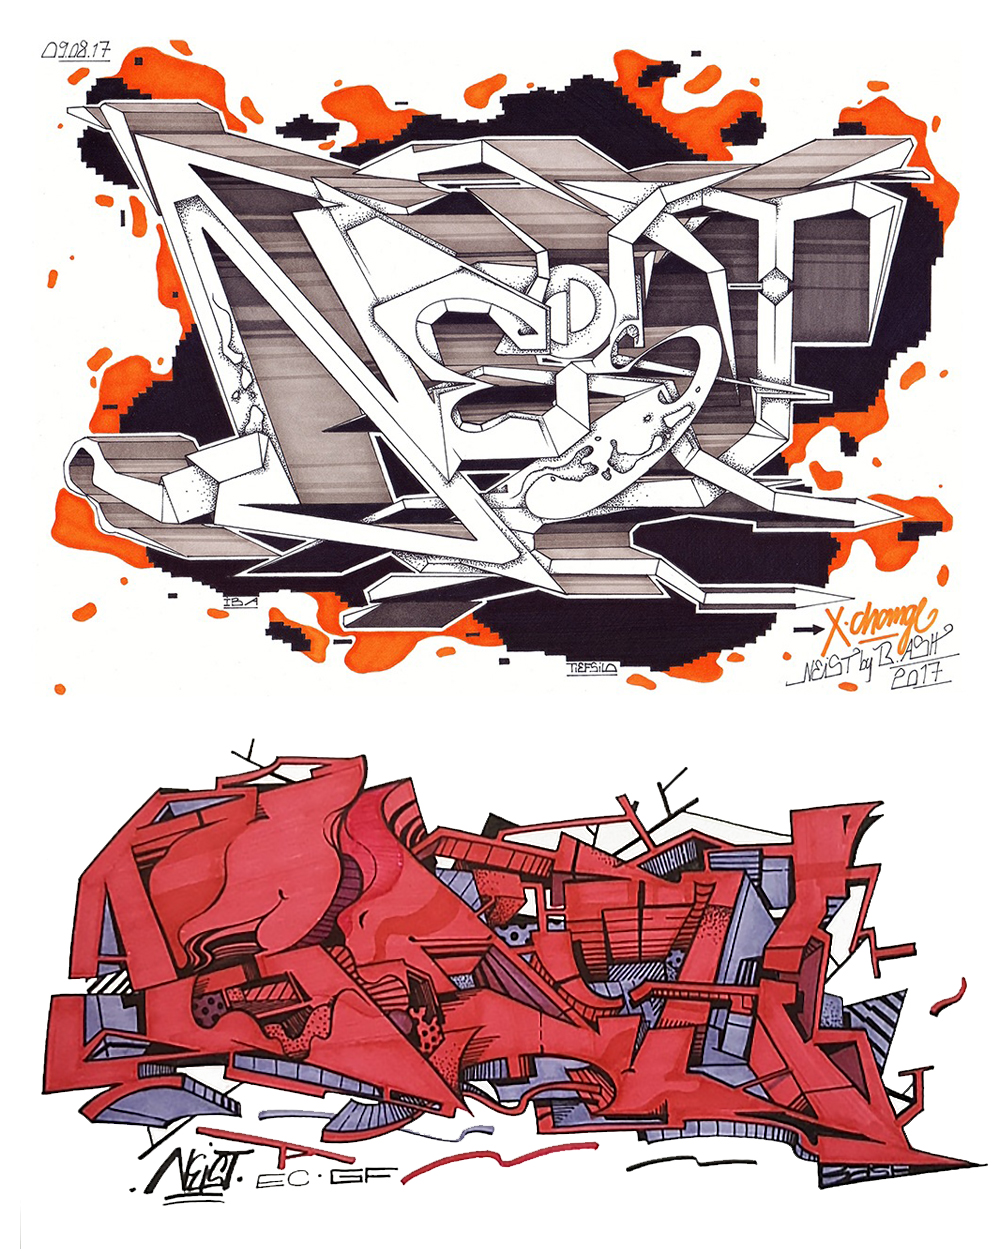 Style exchange with NEIST from France